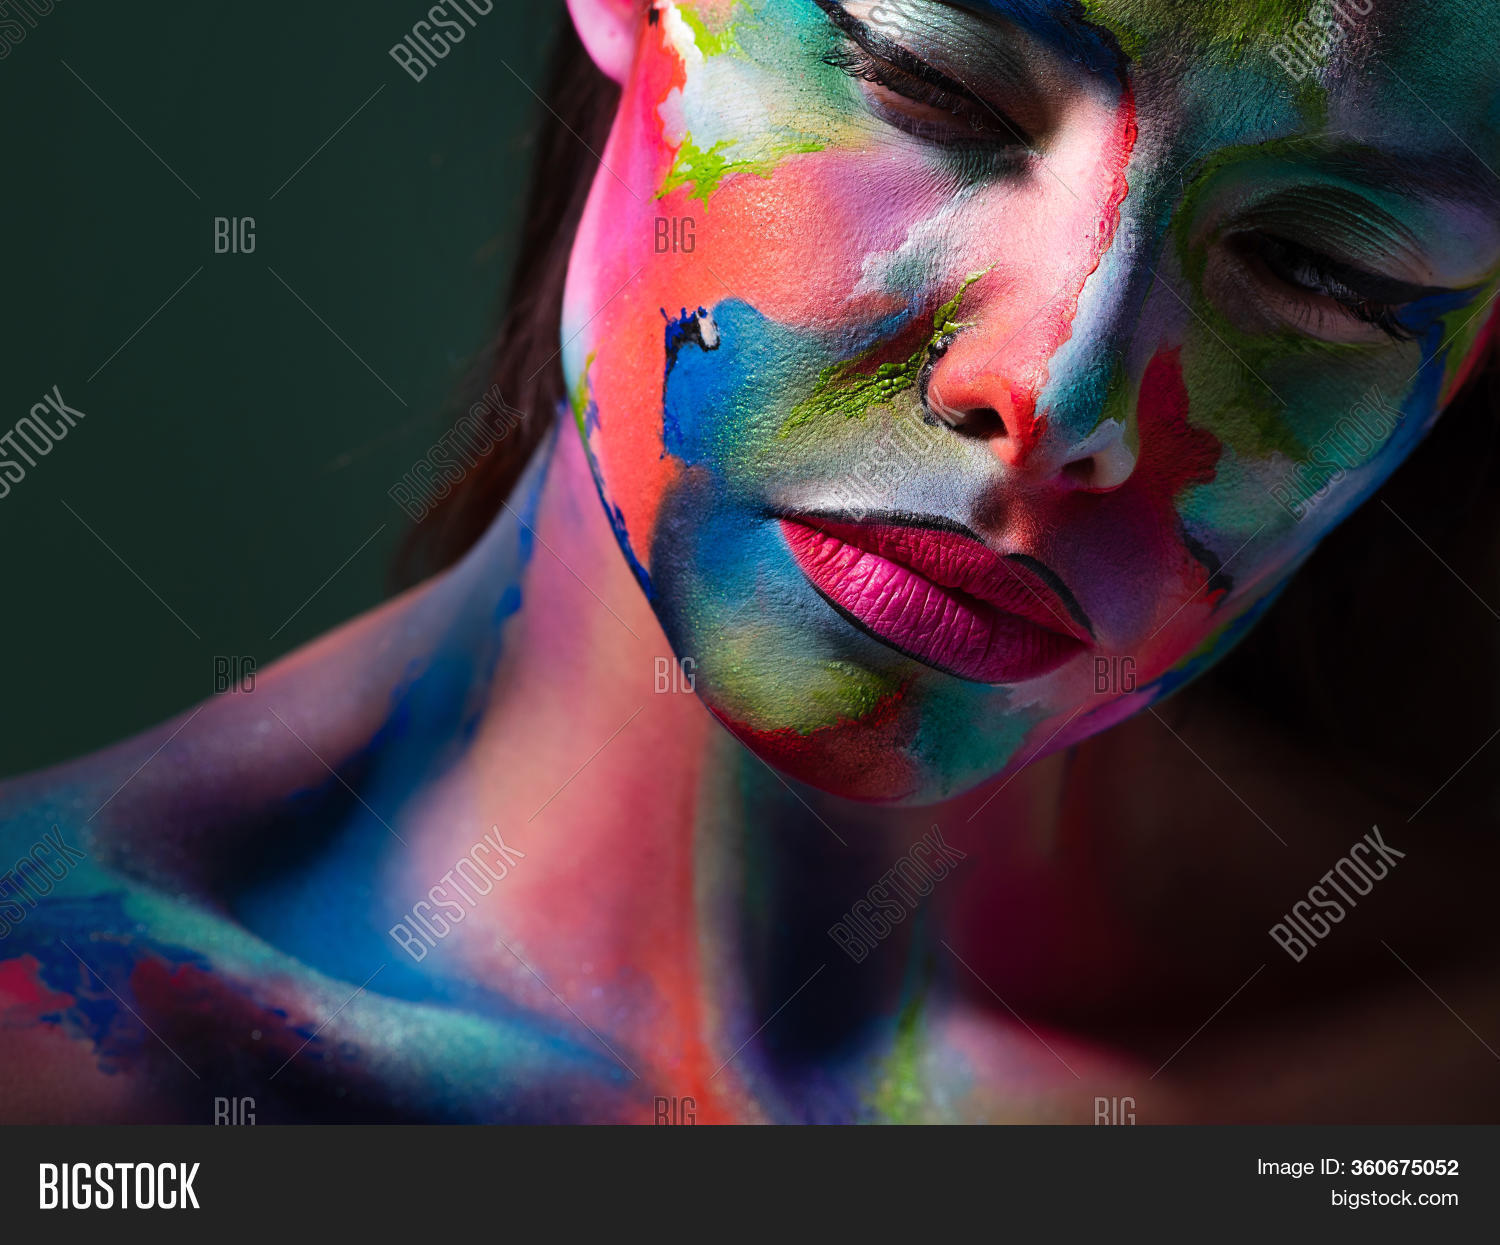 Face Art Body Art Image Photo Free Trial Bigstock